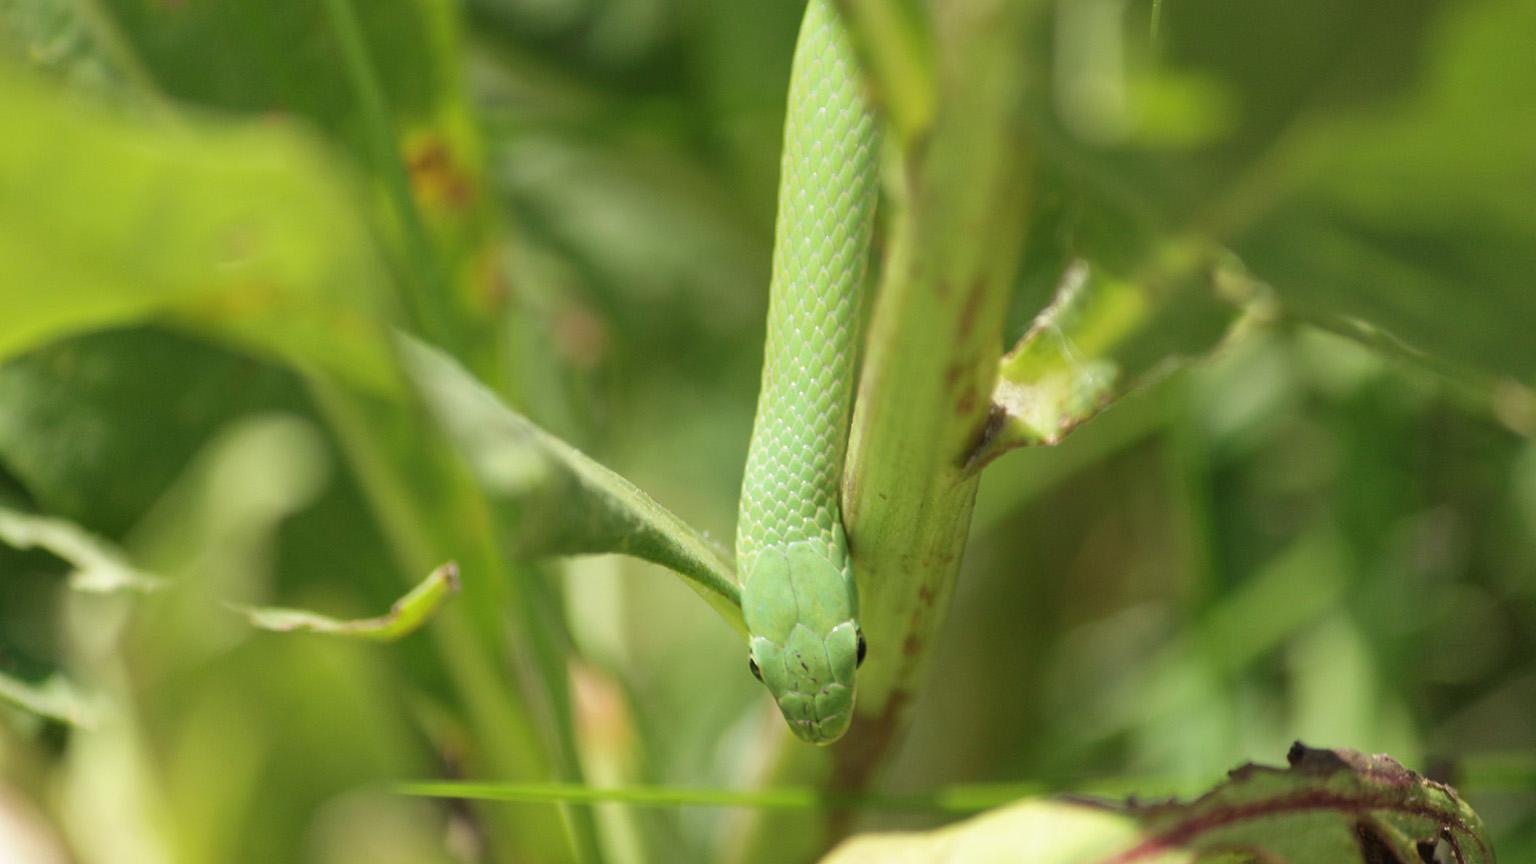 Conservationists are preparing to release about 20 smooth green snakes, like the one pictured here, into an enclosed setting on July 25. (Courtesy Lincoln Park Zoo)